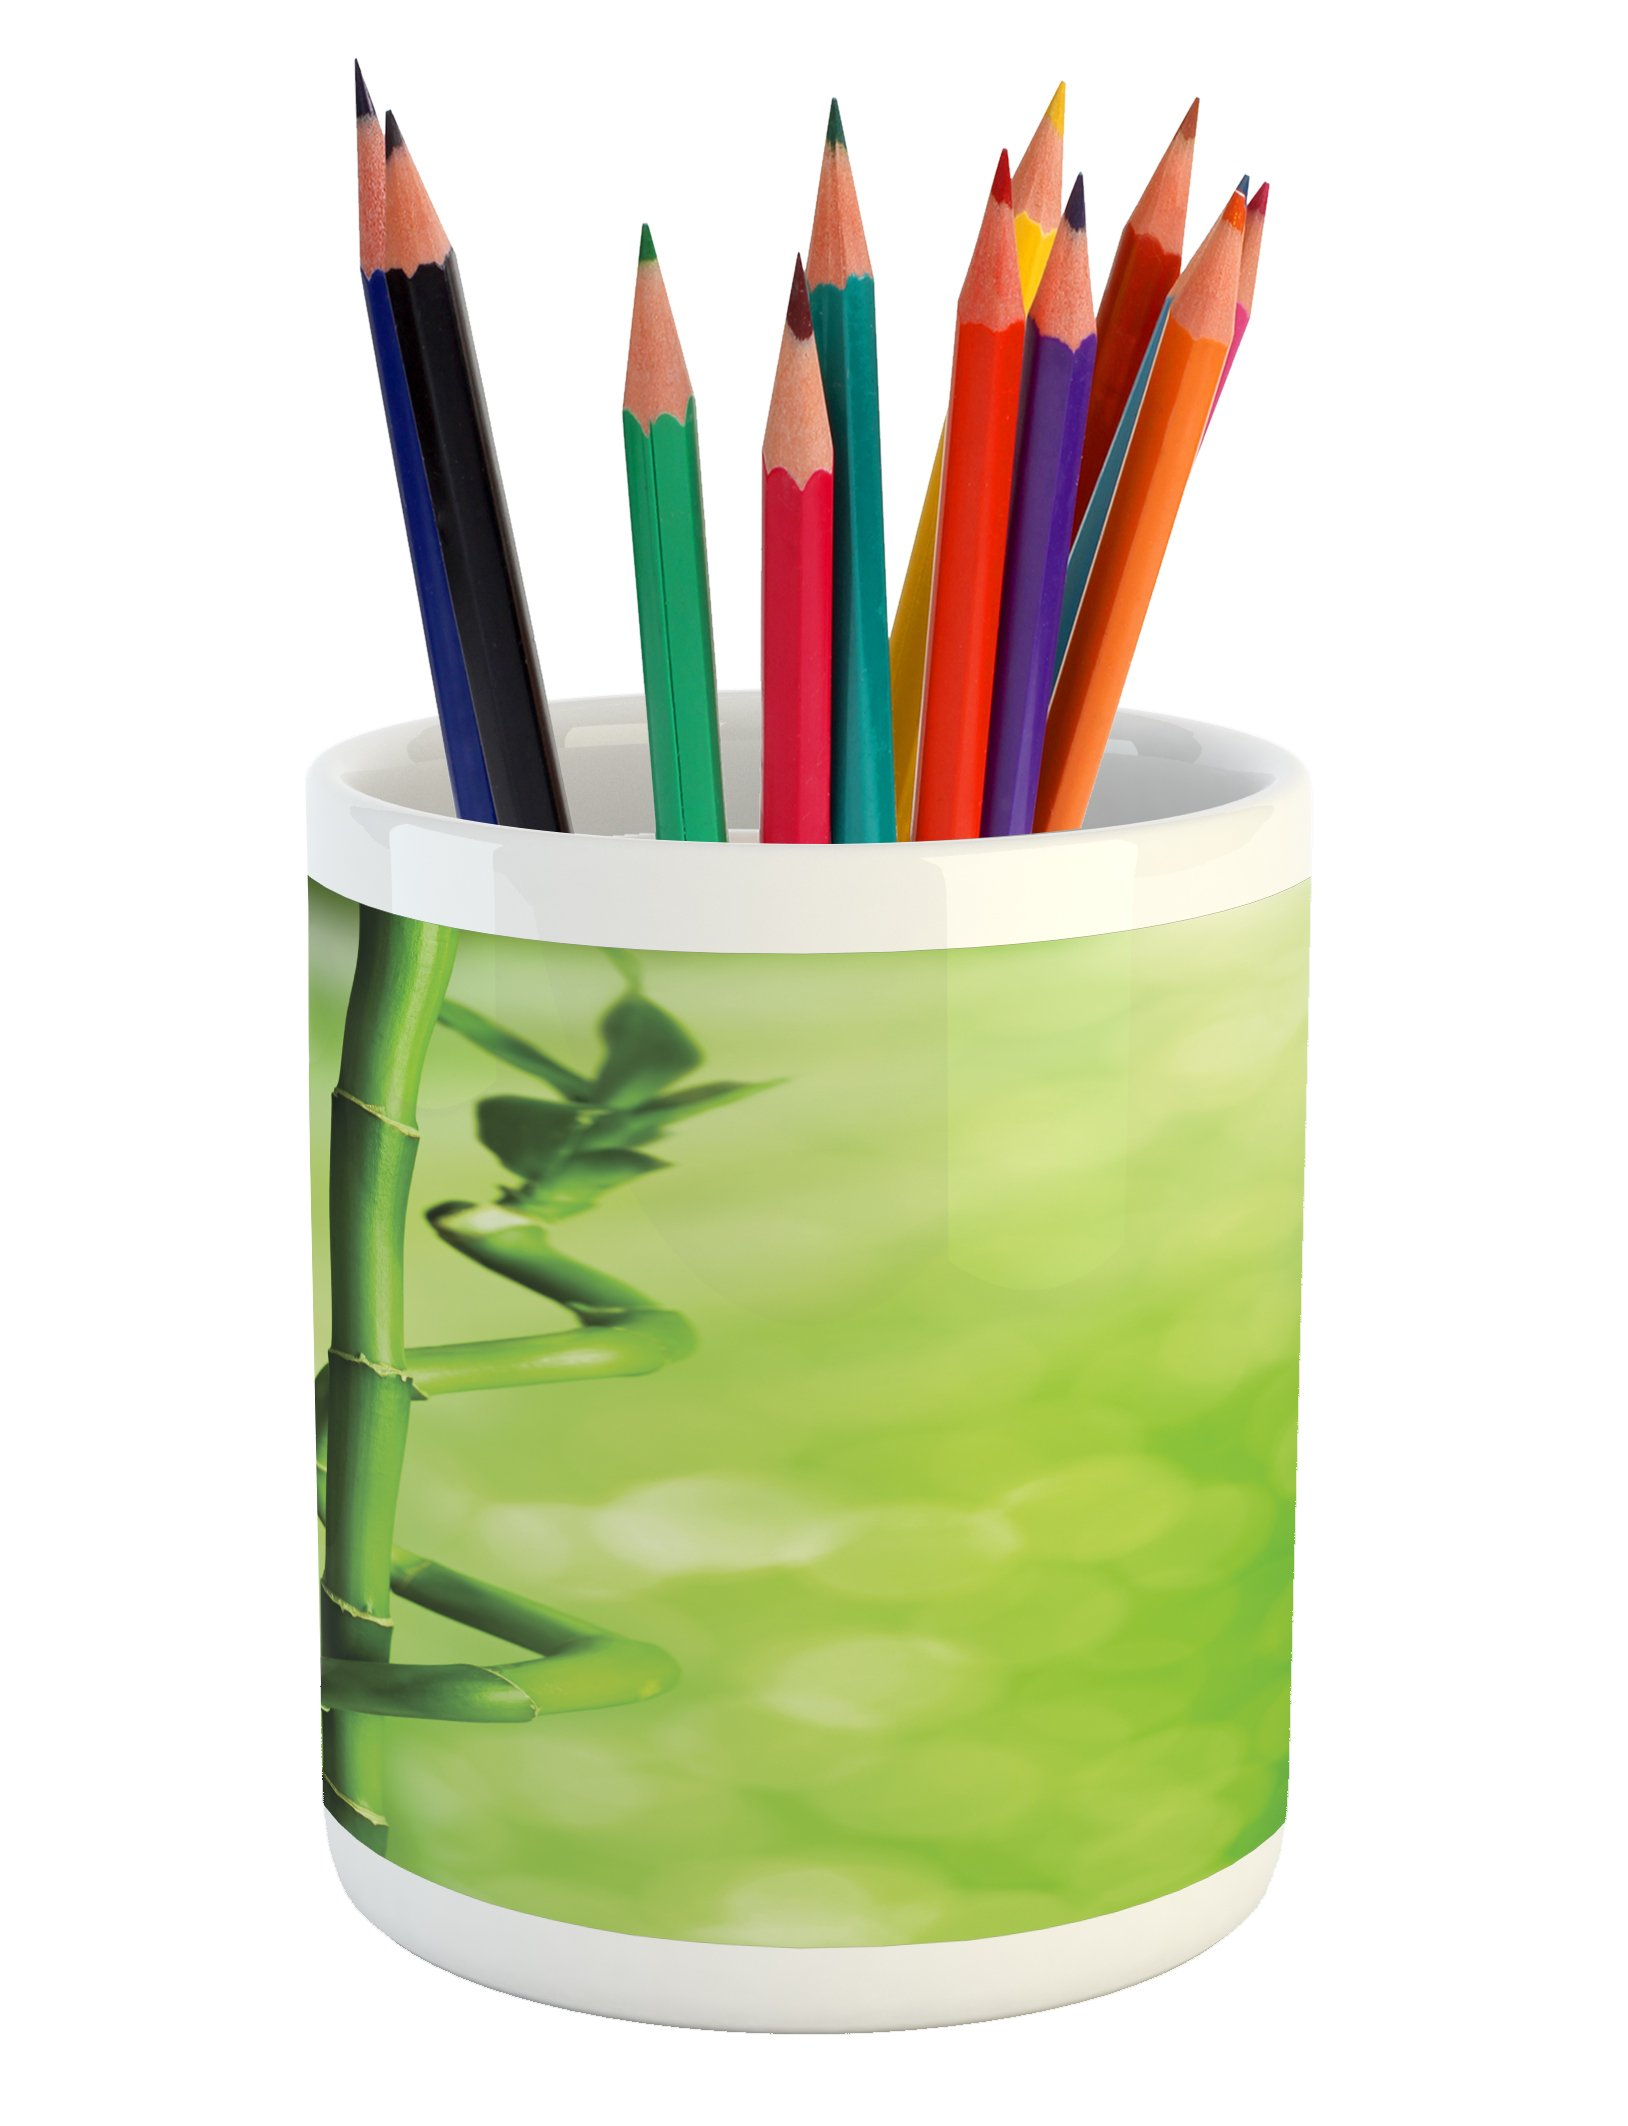 Lunarable Green Pencil Pen Holder, Bamboo Stems Nature Ecology Sunbeams Soft Spring Scenic Spa Health Relaxation, Printed Ceramic Pencil Pen Holder for Desk Office Accessory, Green Pale Green